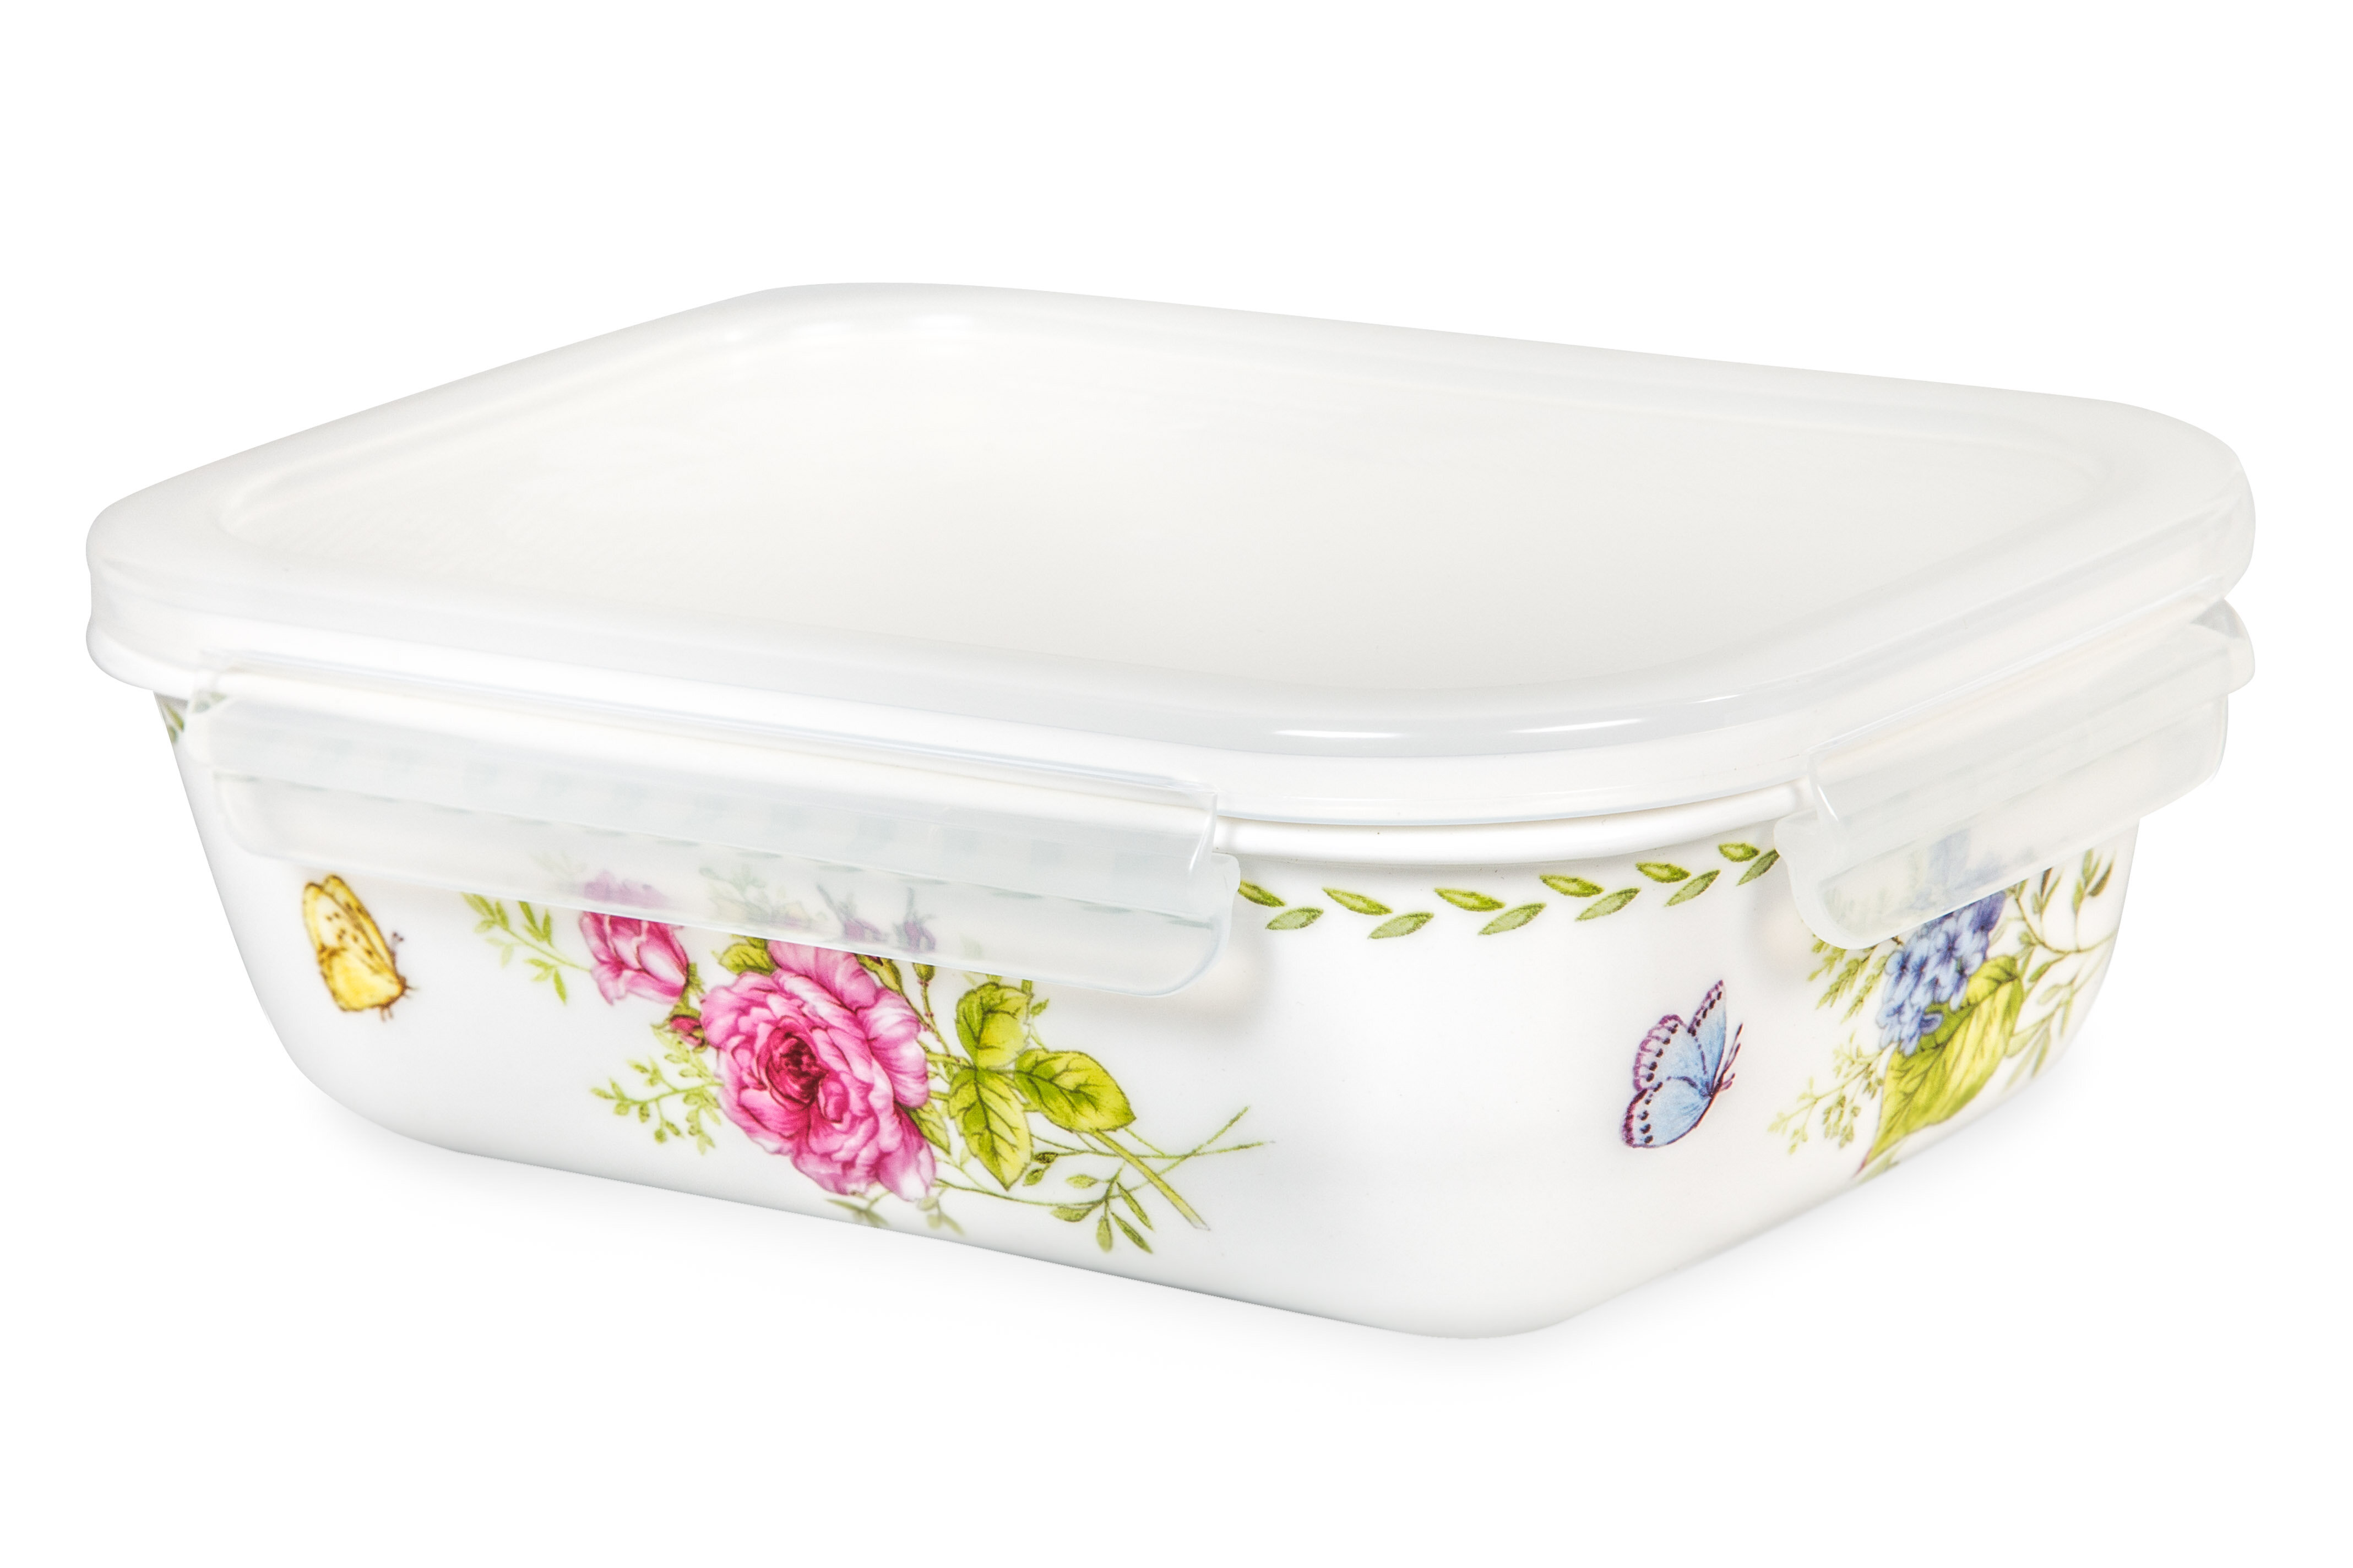 Lock U0026 Lock Ashley Rectangular 31 Oz. Food Storage Container | Wayfair